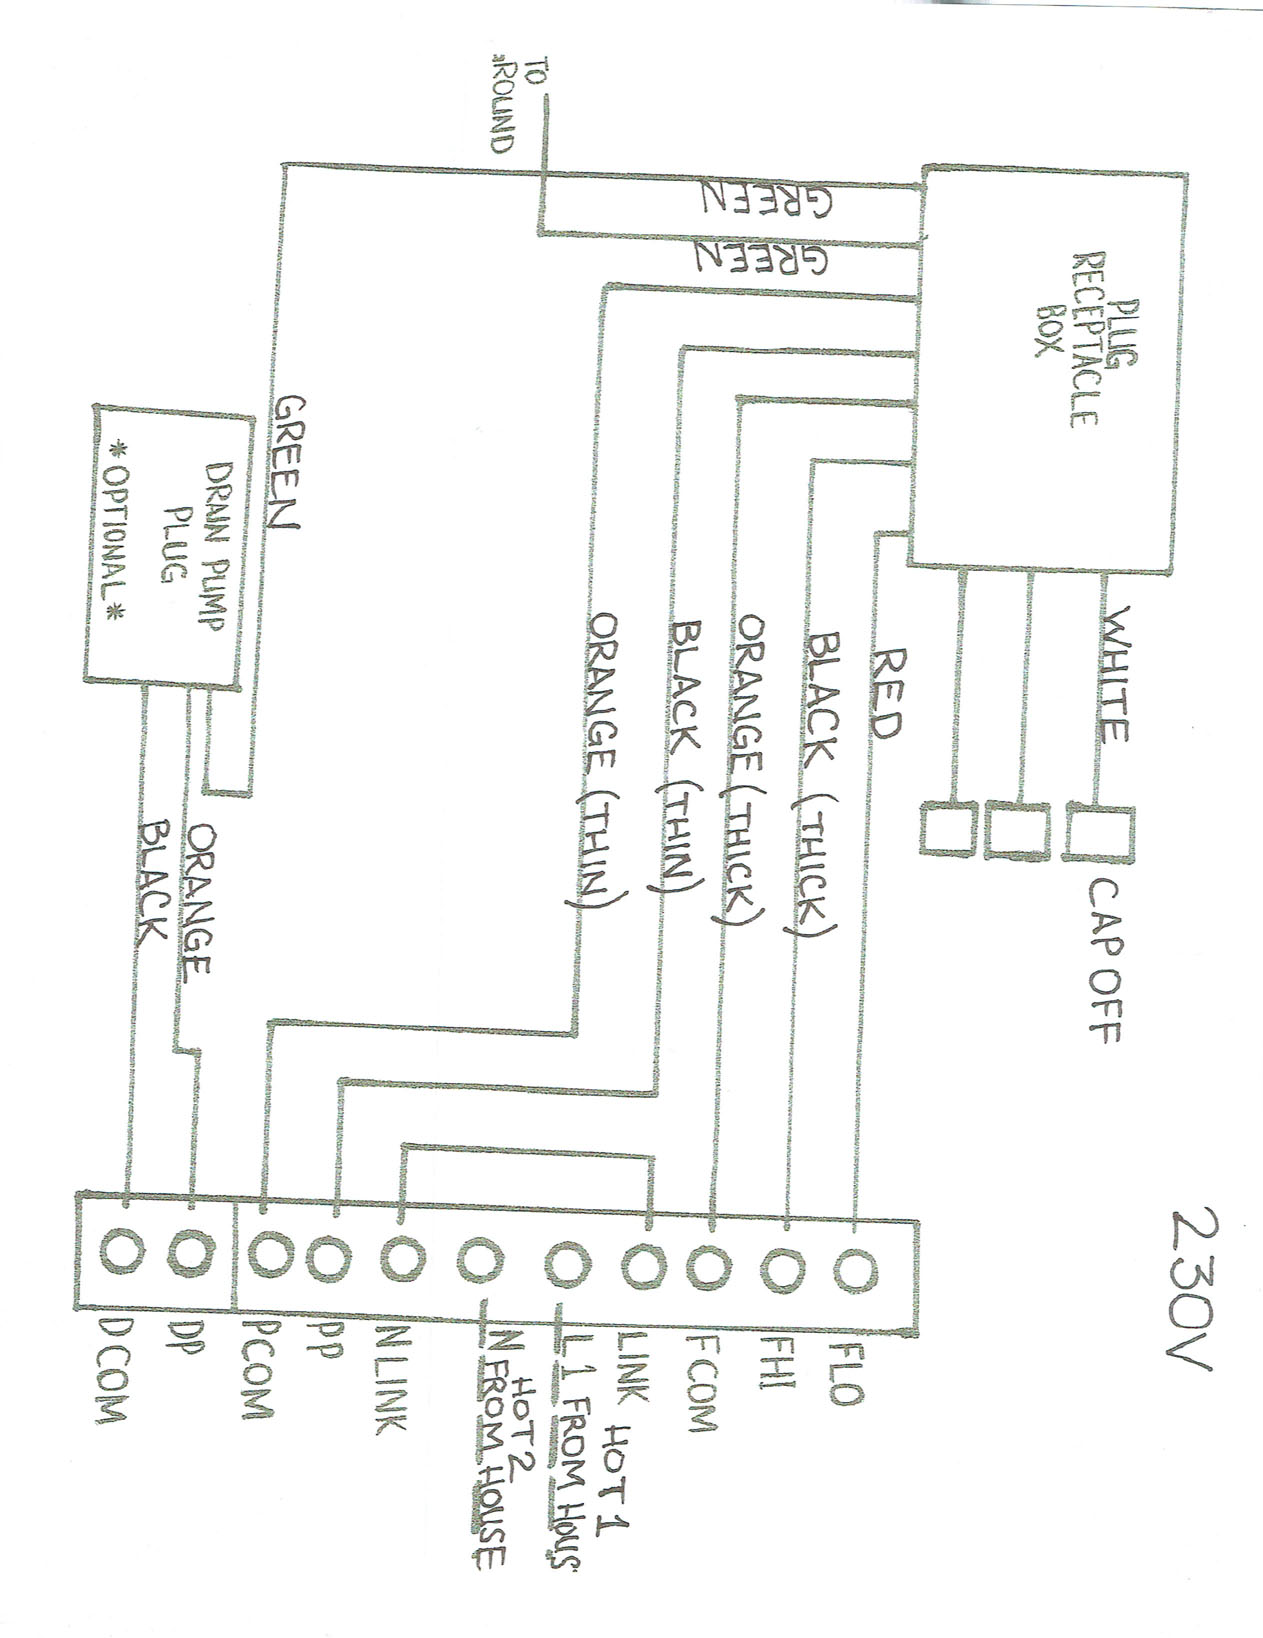 Cooling Tower Electrical Diagram